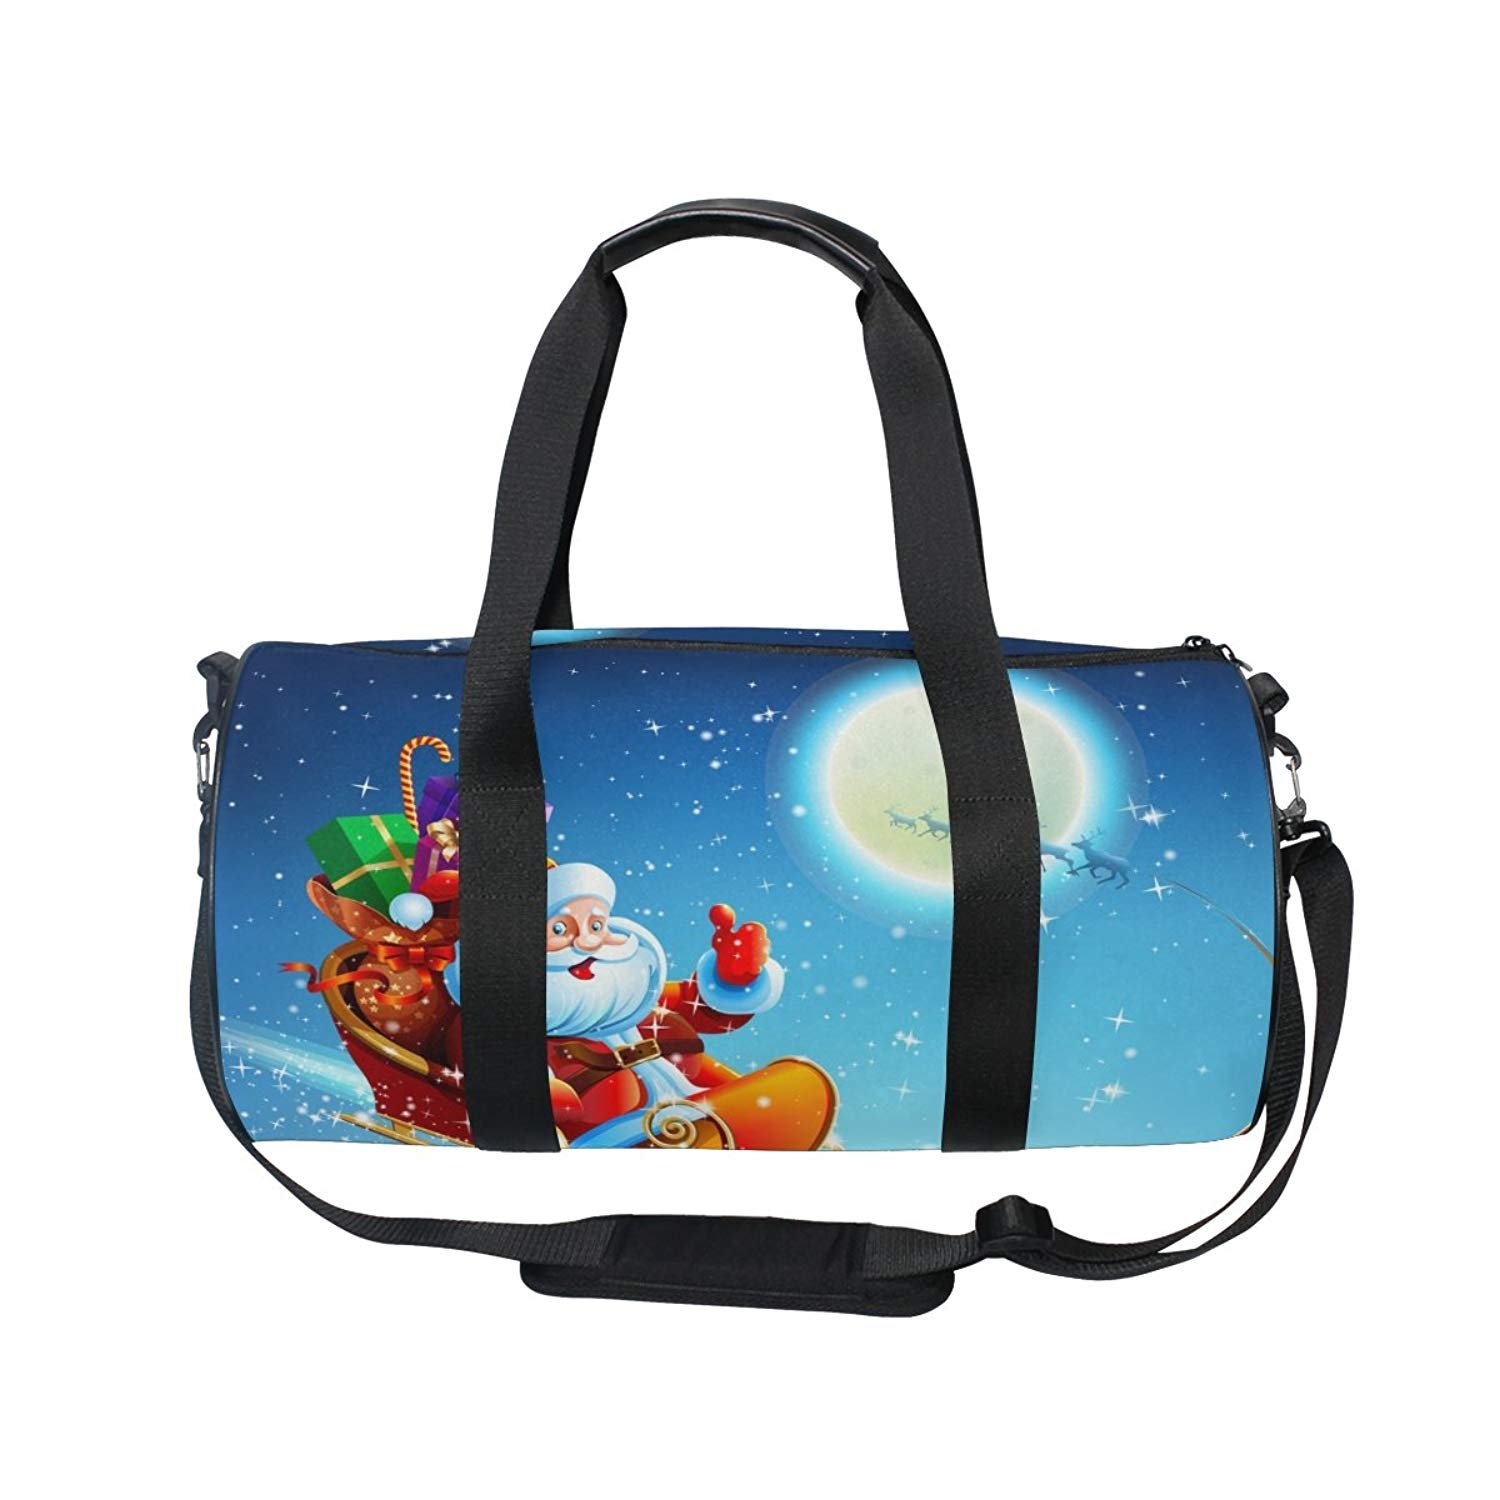 oulian Planets Stars Galaxy Space便利スポーツジムショルダーダッフルバッグ One Size picture7 B07FSJGLGB